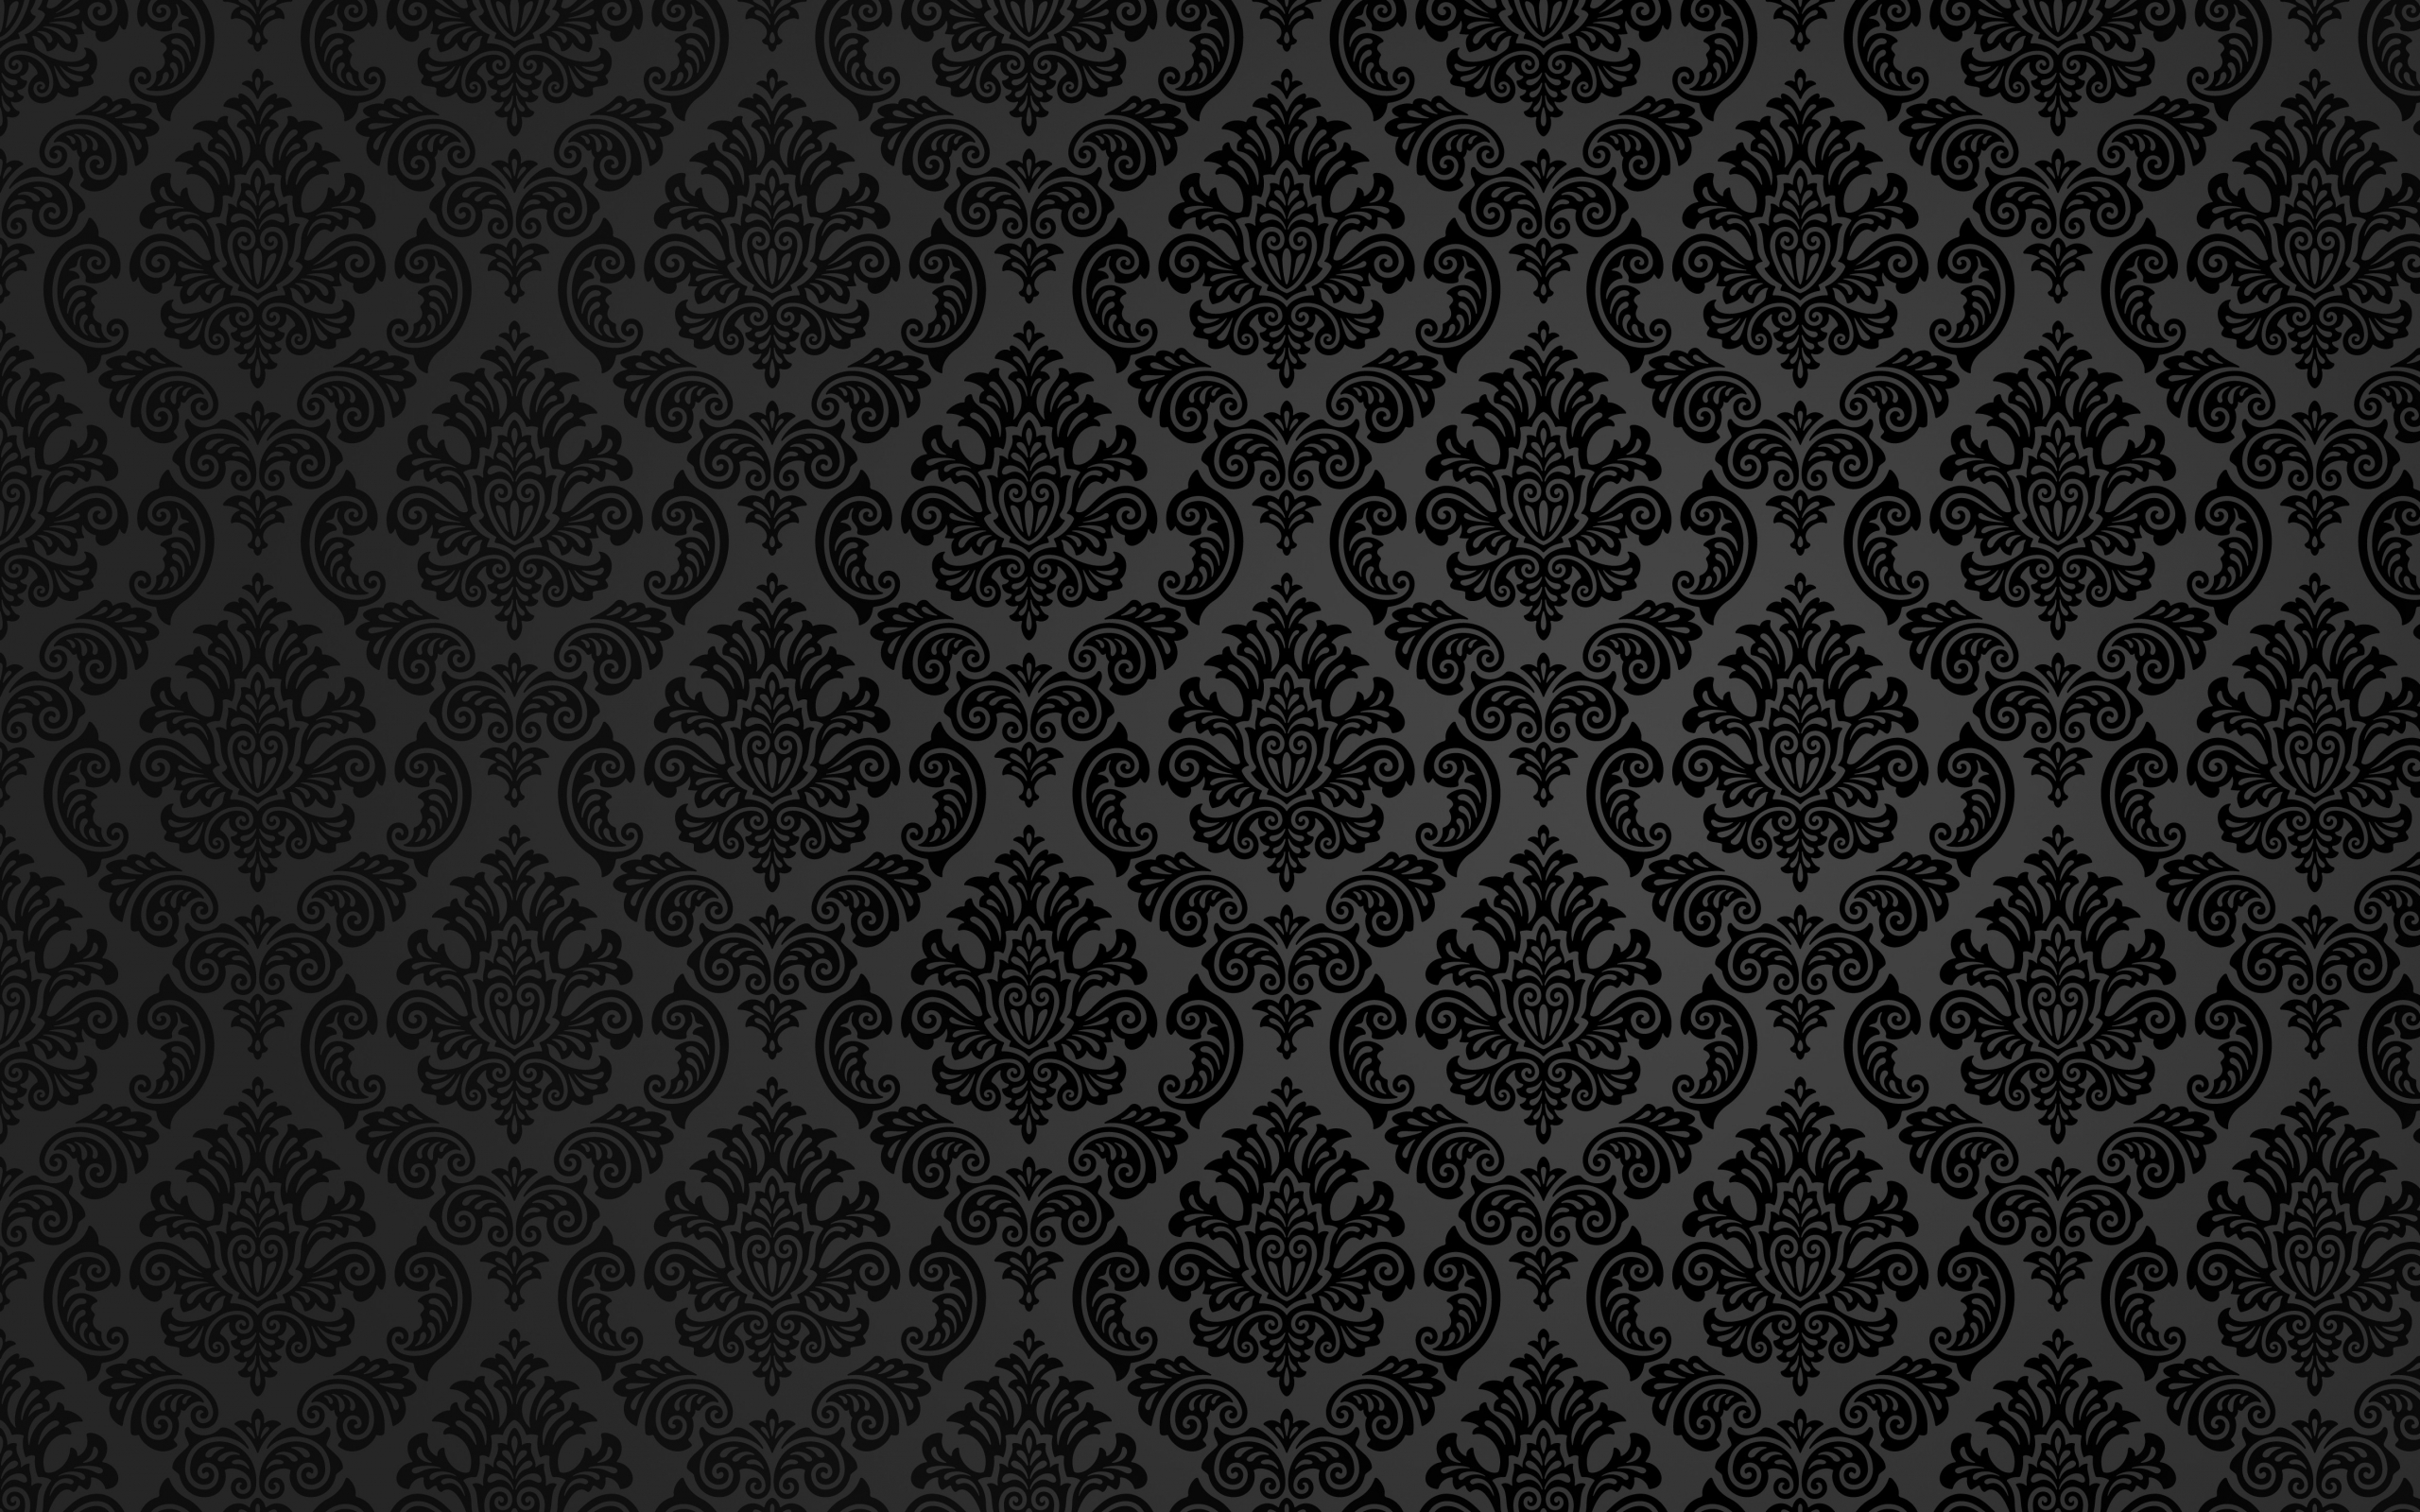 Black And White Damask Wallpaper 14 Background 2560x1600